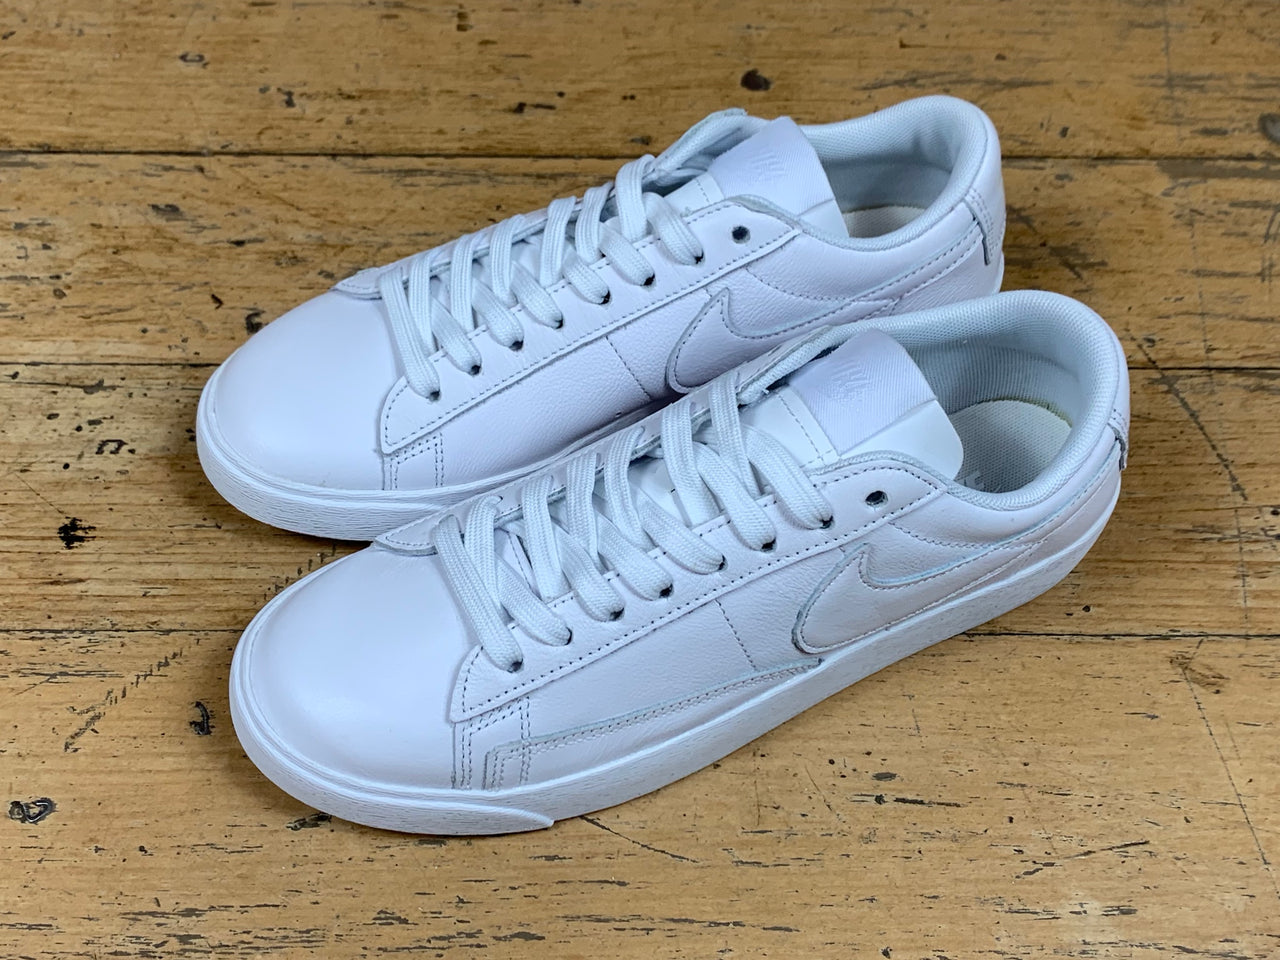 Women's Blazer Low LE - White